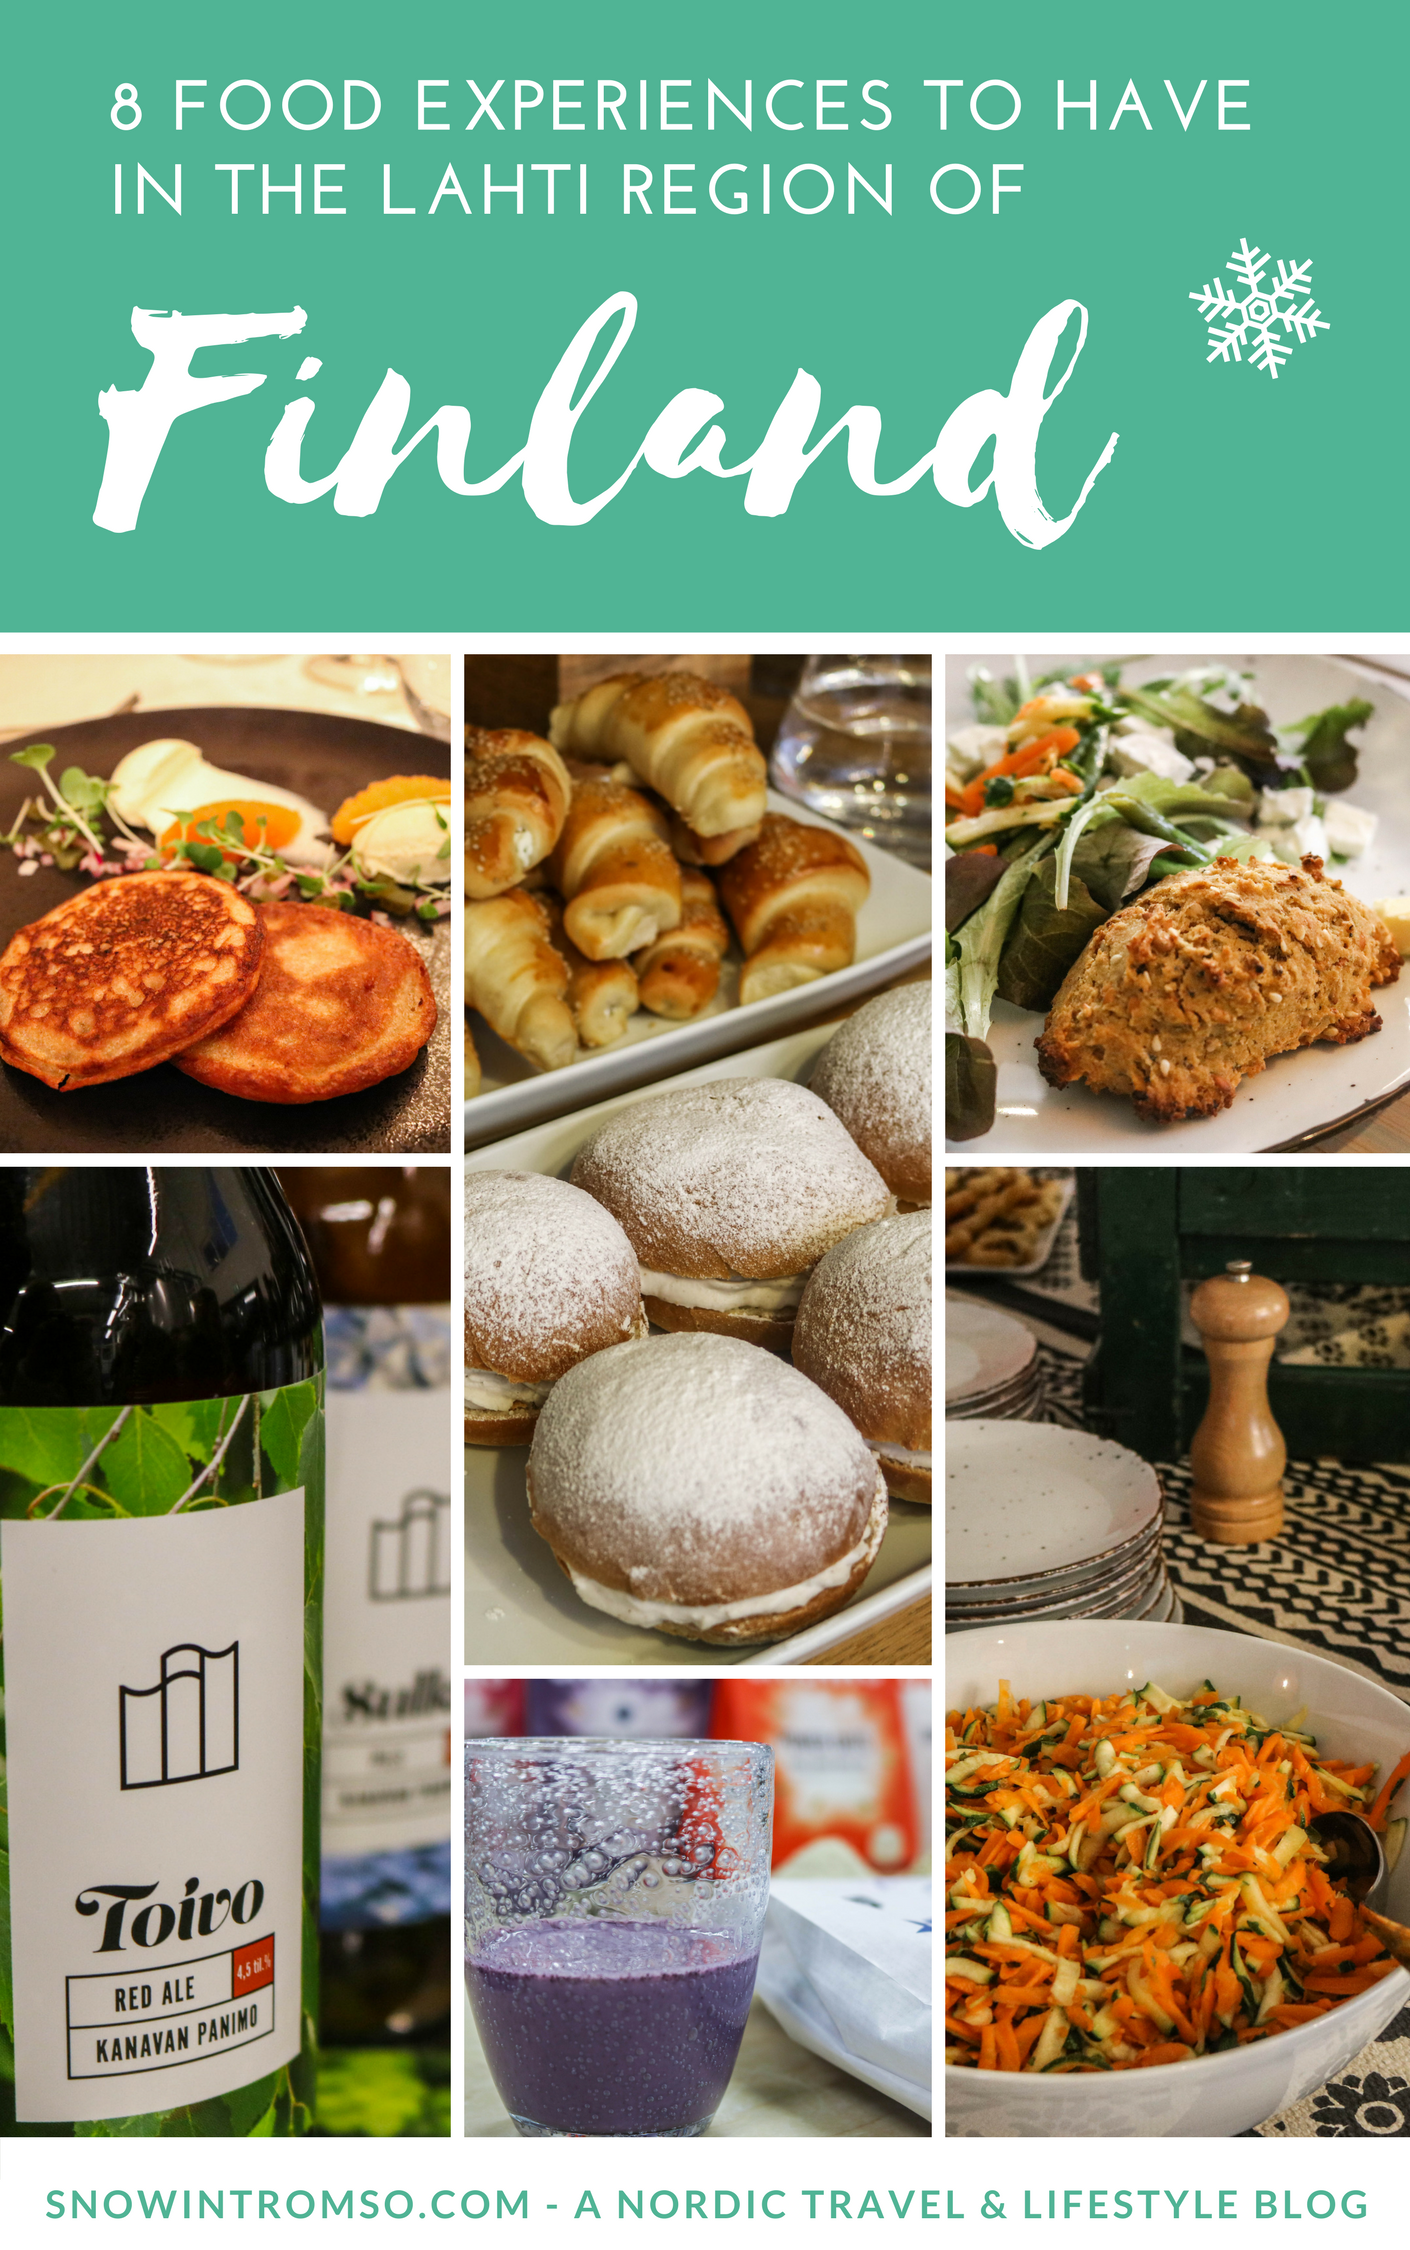 Considering a trip to Finland? Click through to read about 8 foodie experiences you NEED to have in Lahti!